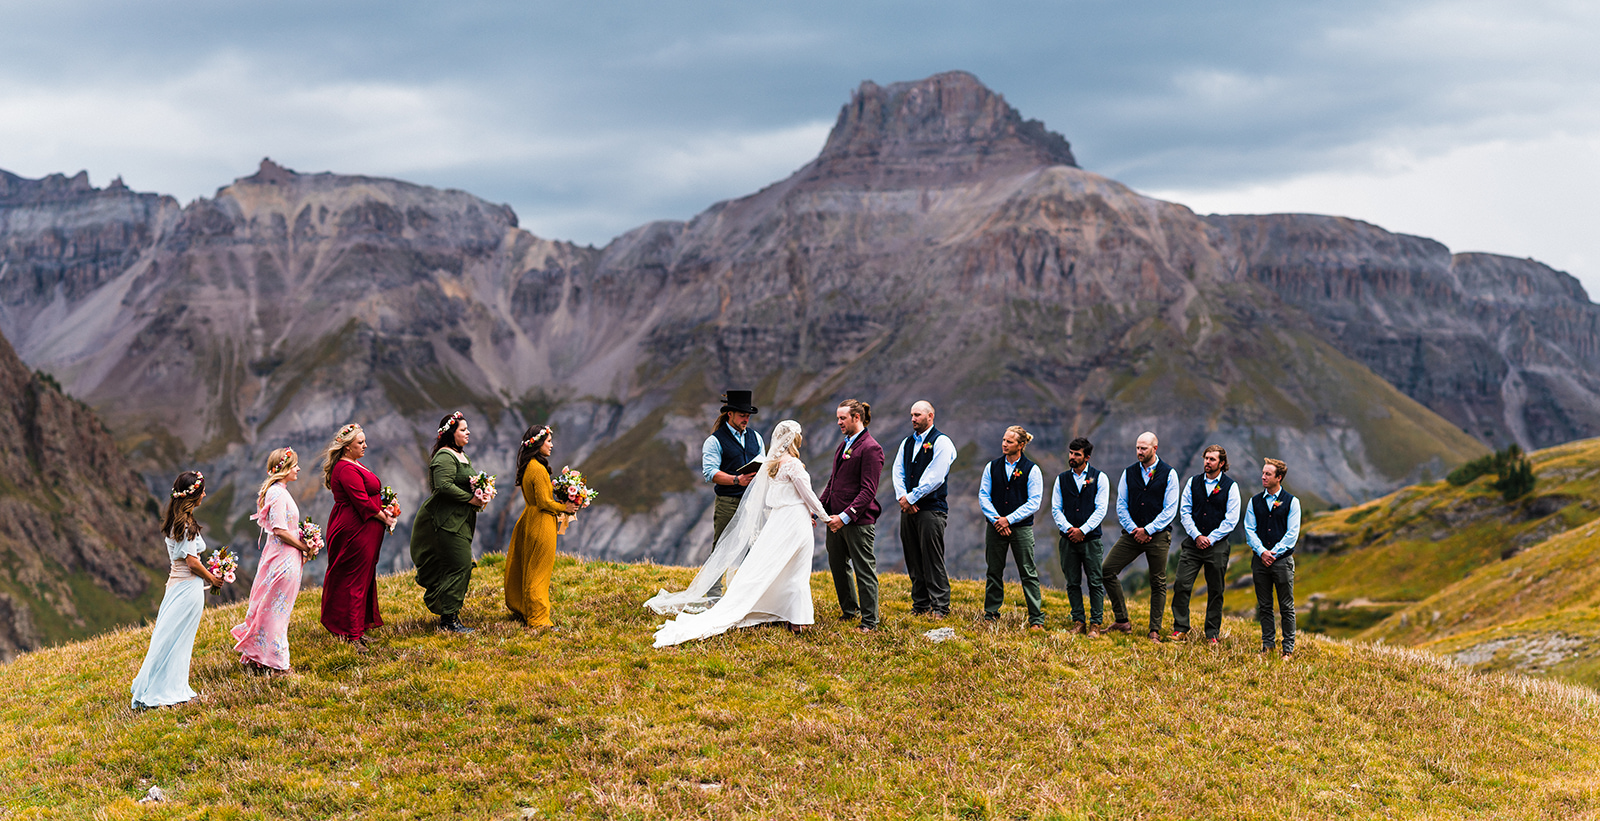 Hayle_Niels_Ouray_Wedding_The_Foxes_Photography_097-2.jpg